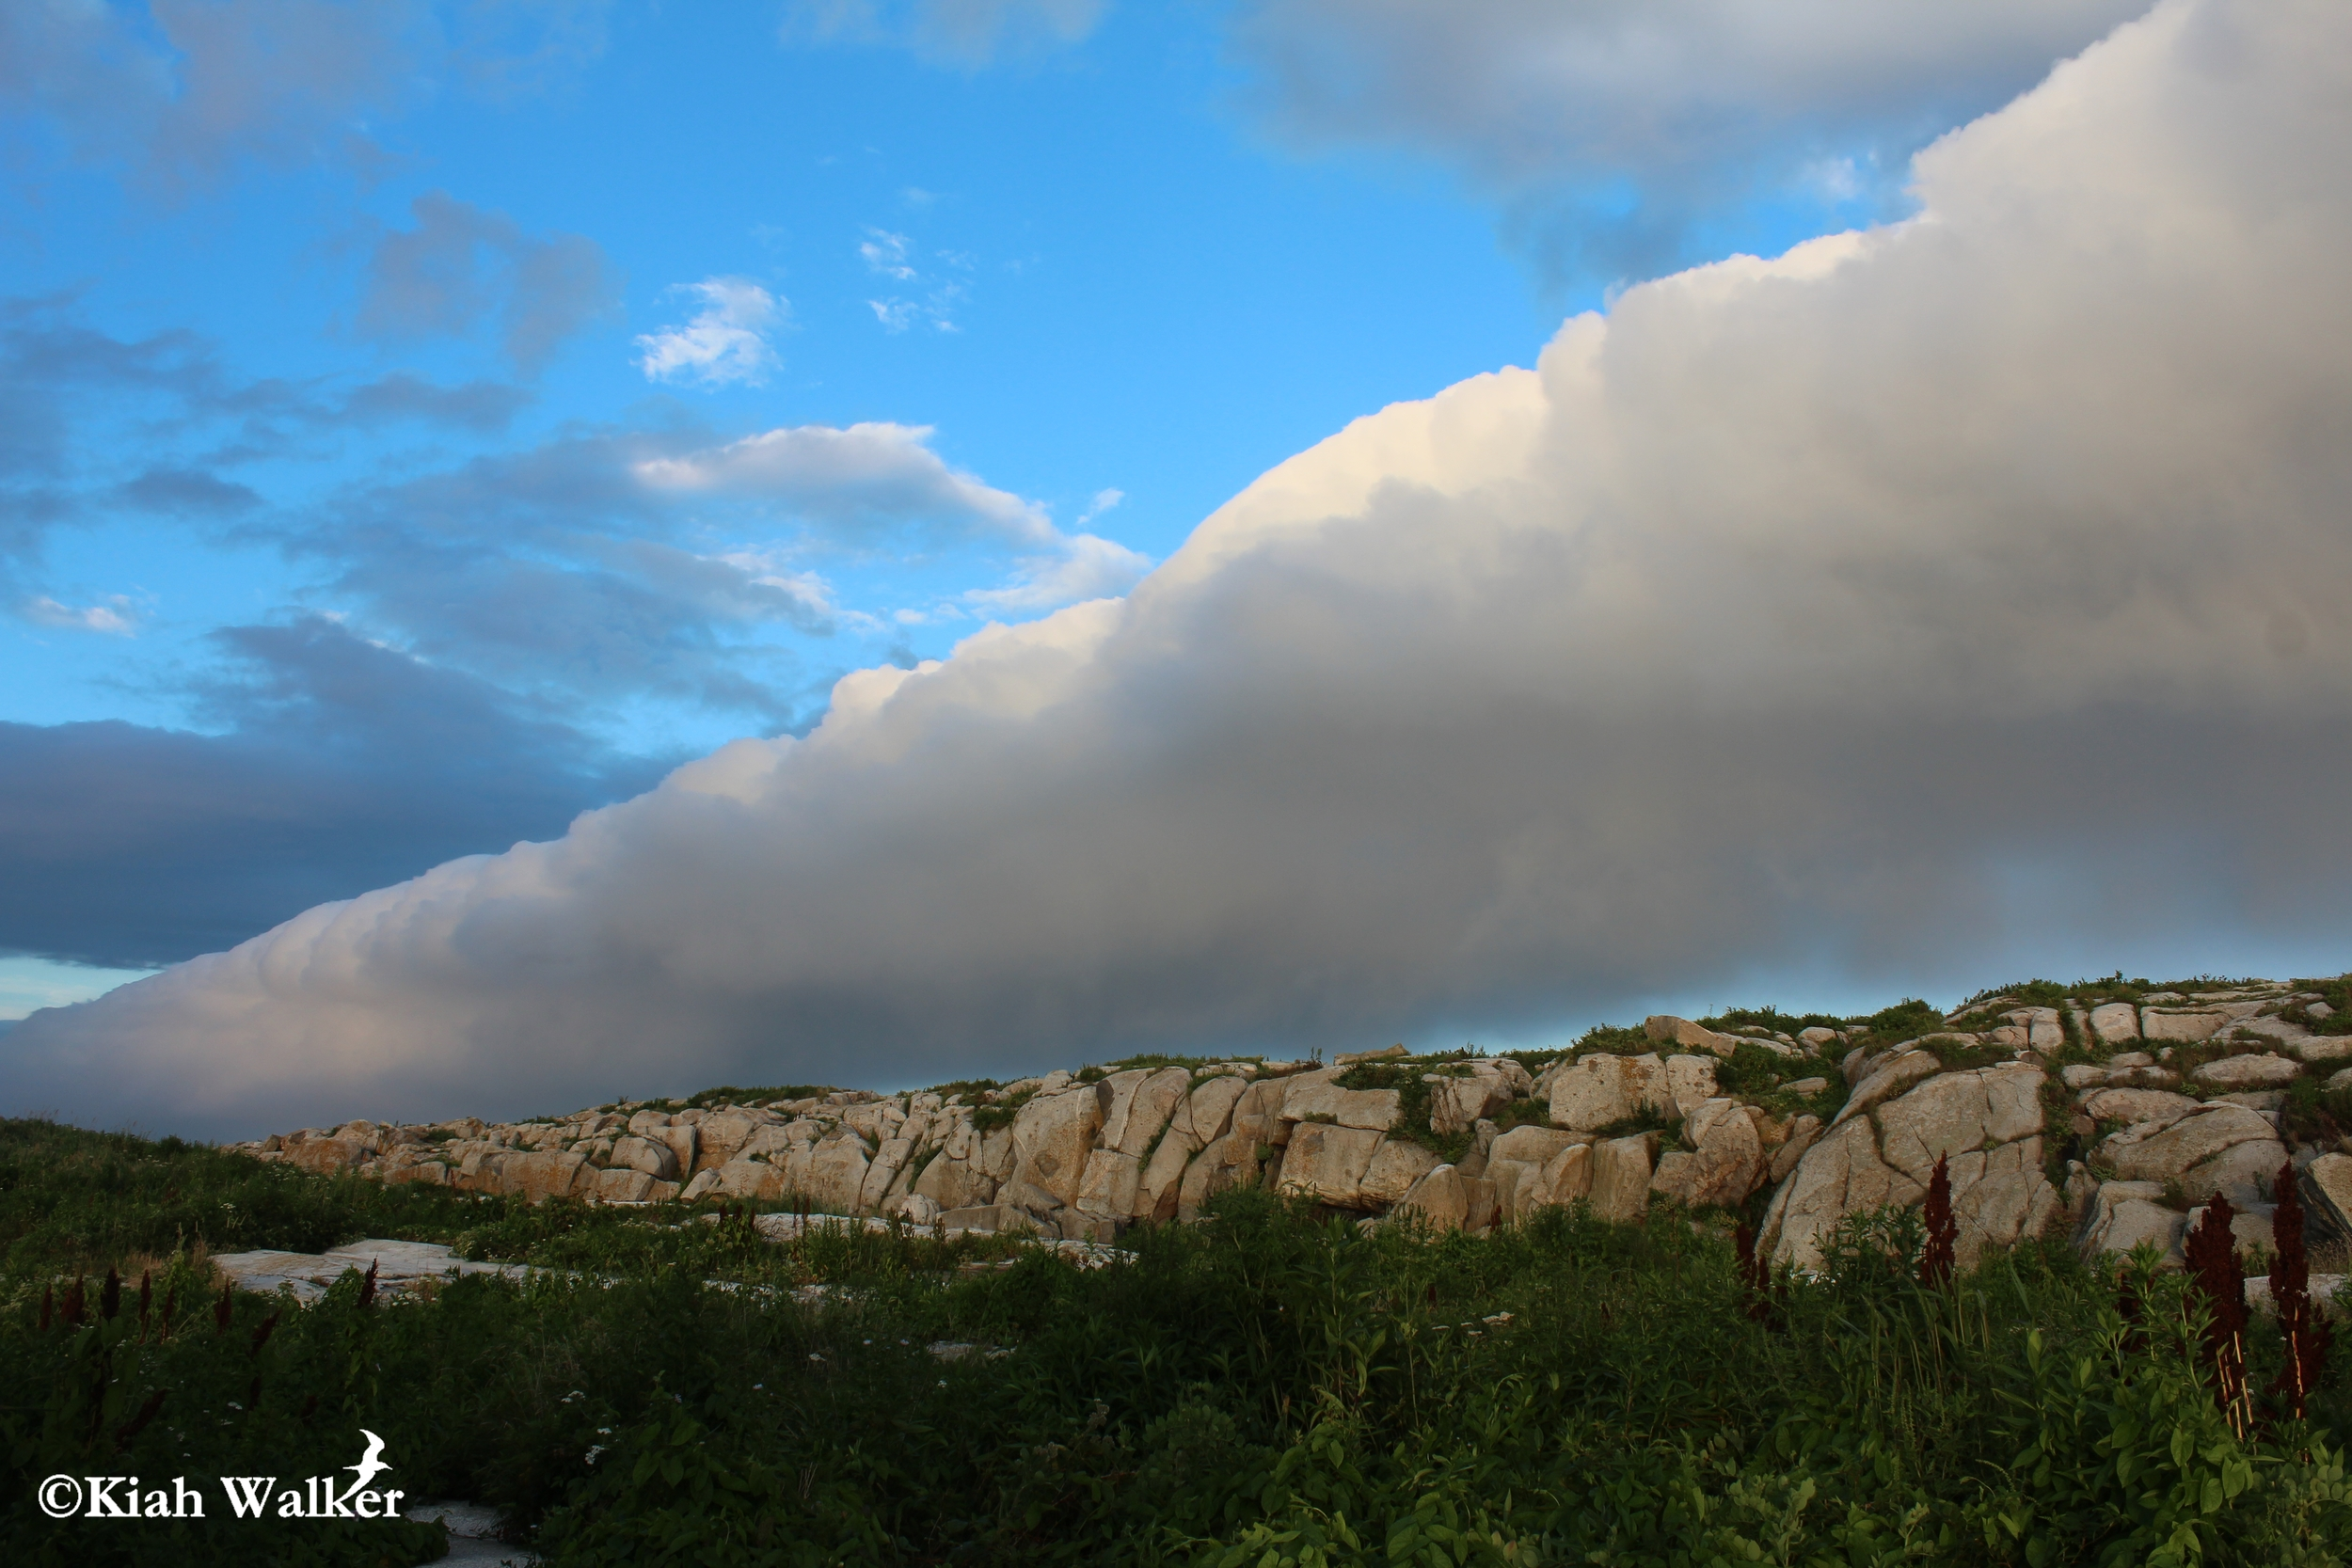 Cloud bank over the spine